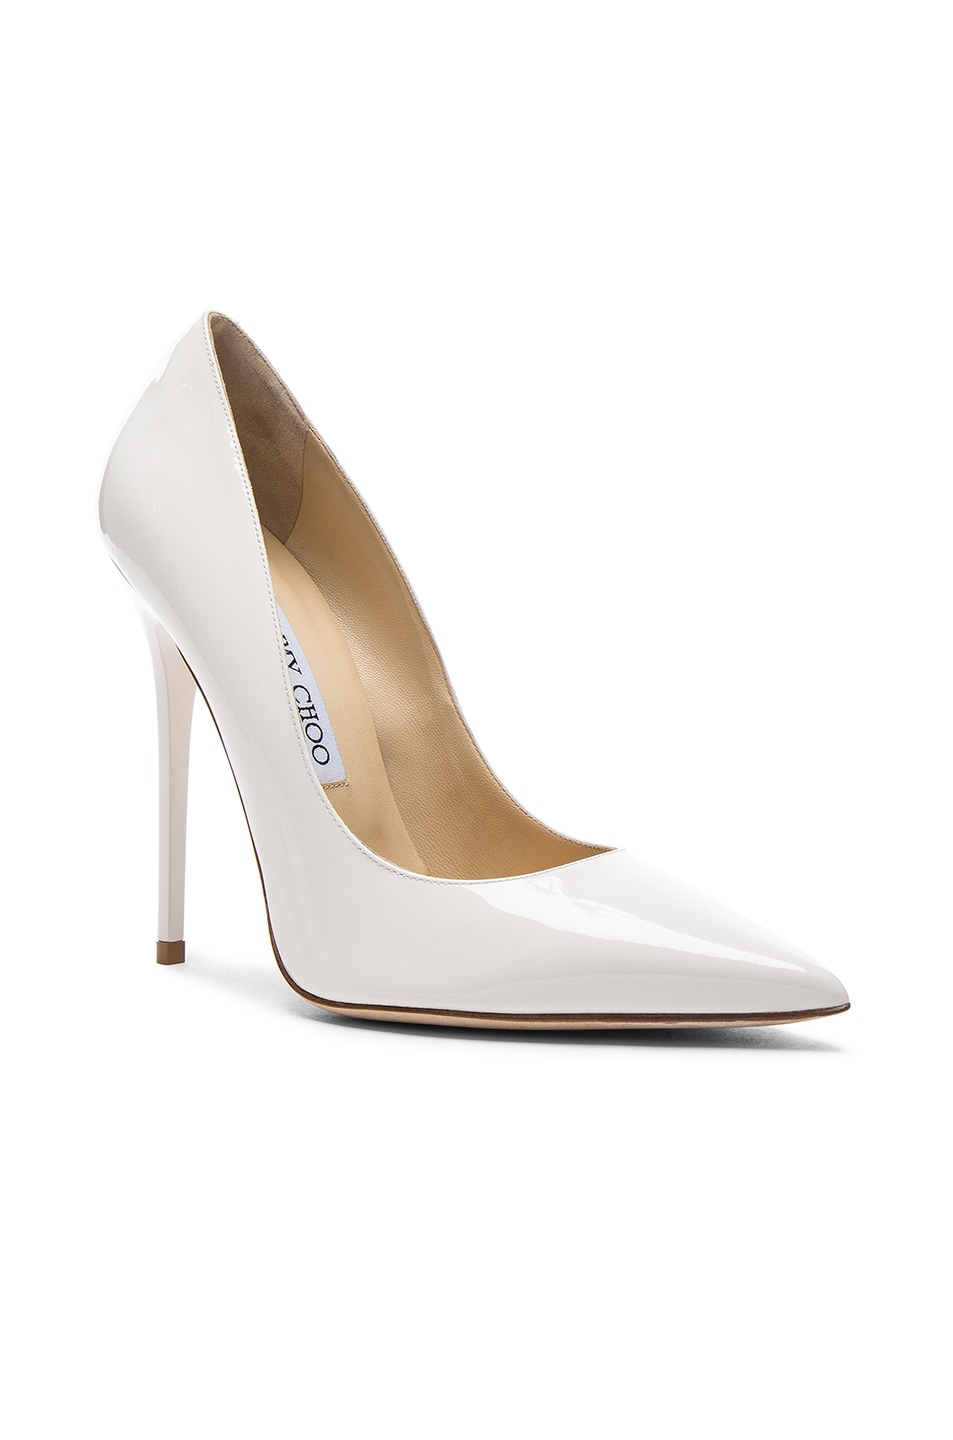 Image 2 of Jimmy Choo Patent Leather Anouk Pumps in Chalk